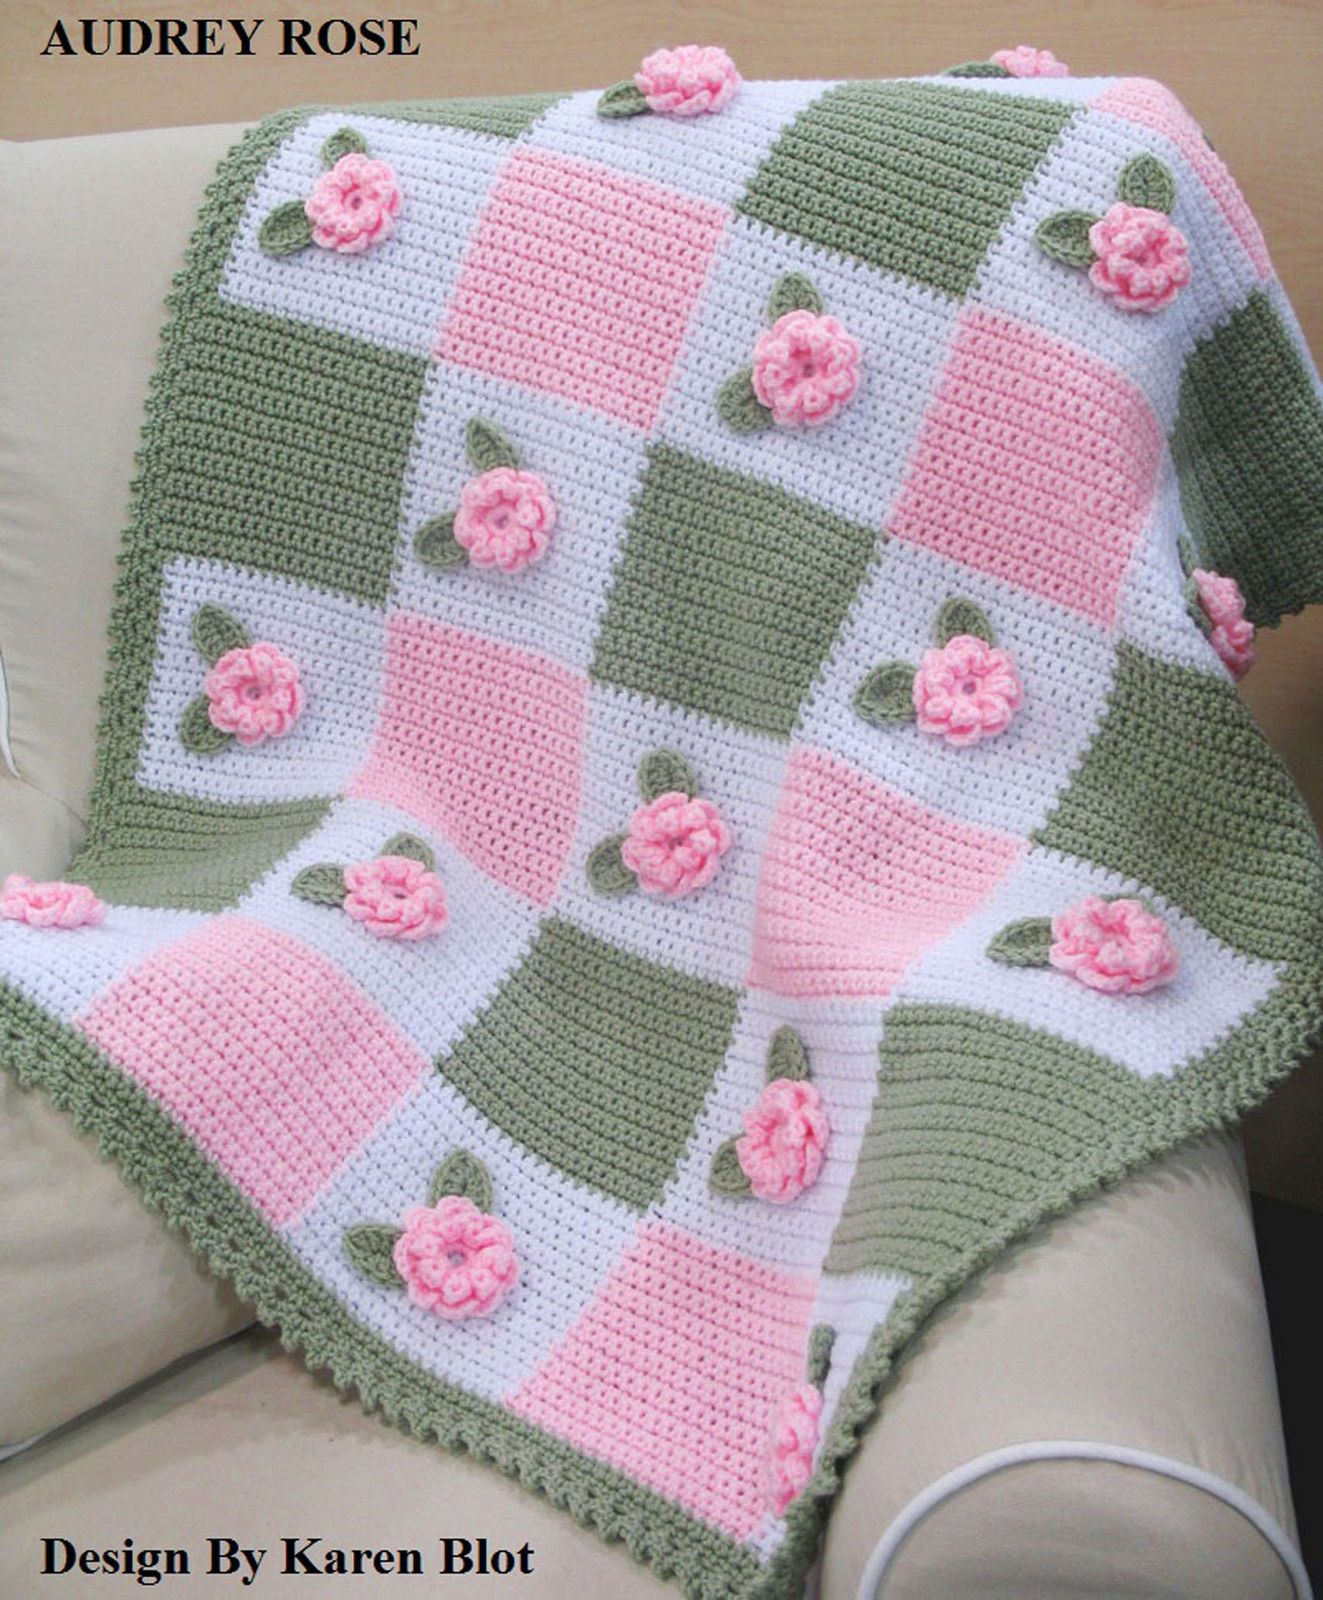 Victorian \'Audrey Rose\' Baby Crochet Afghan Pattern 3-D | Iniciales ...